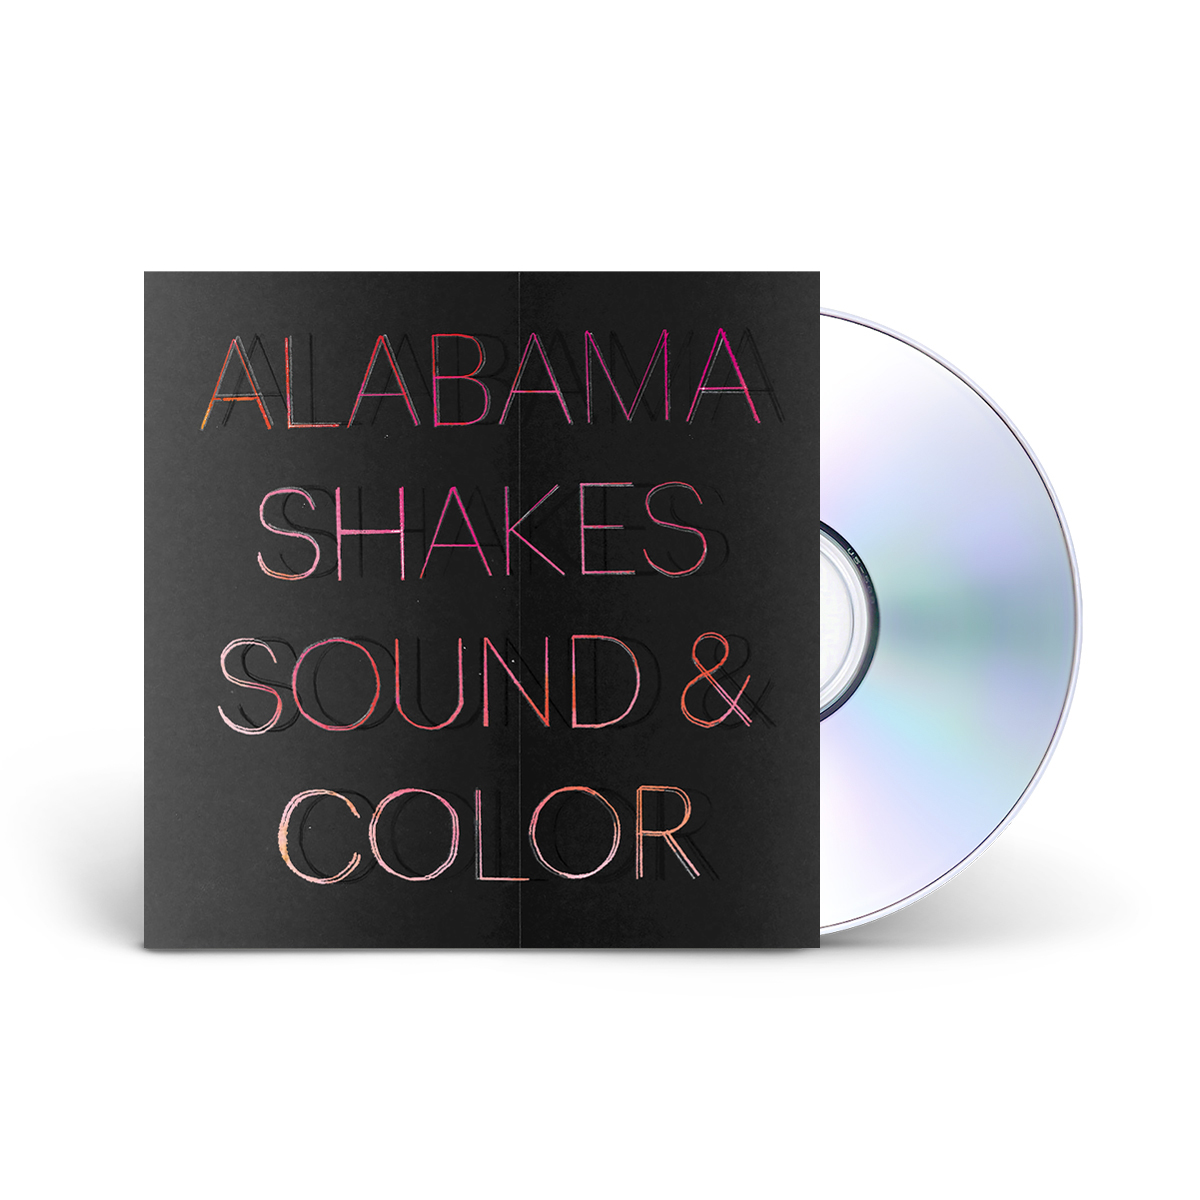 Alabama Shakes – Sound & Color Deluxe CD